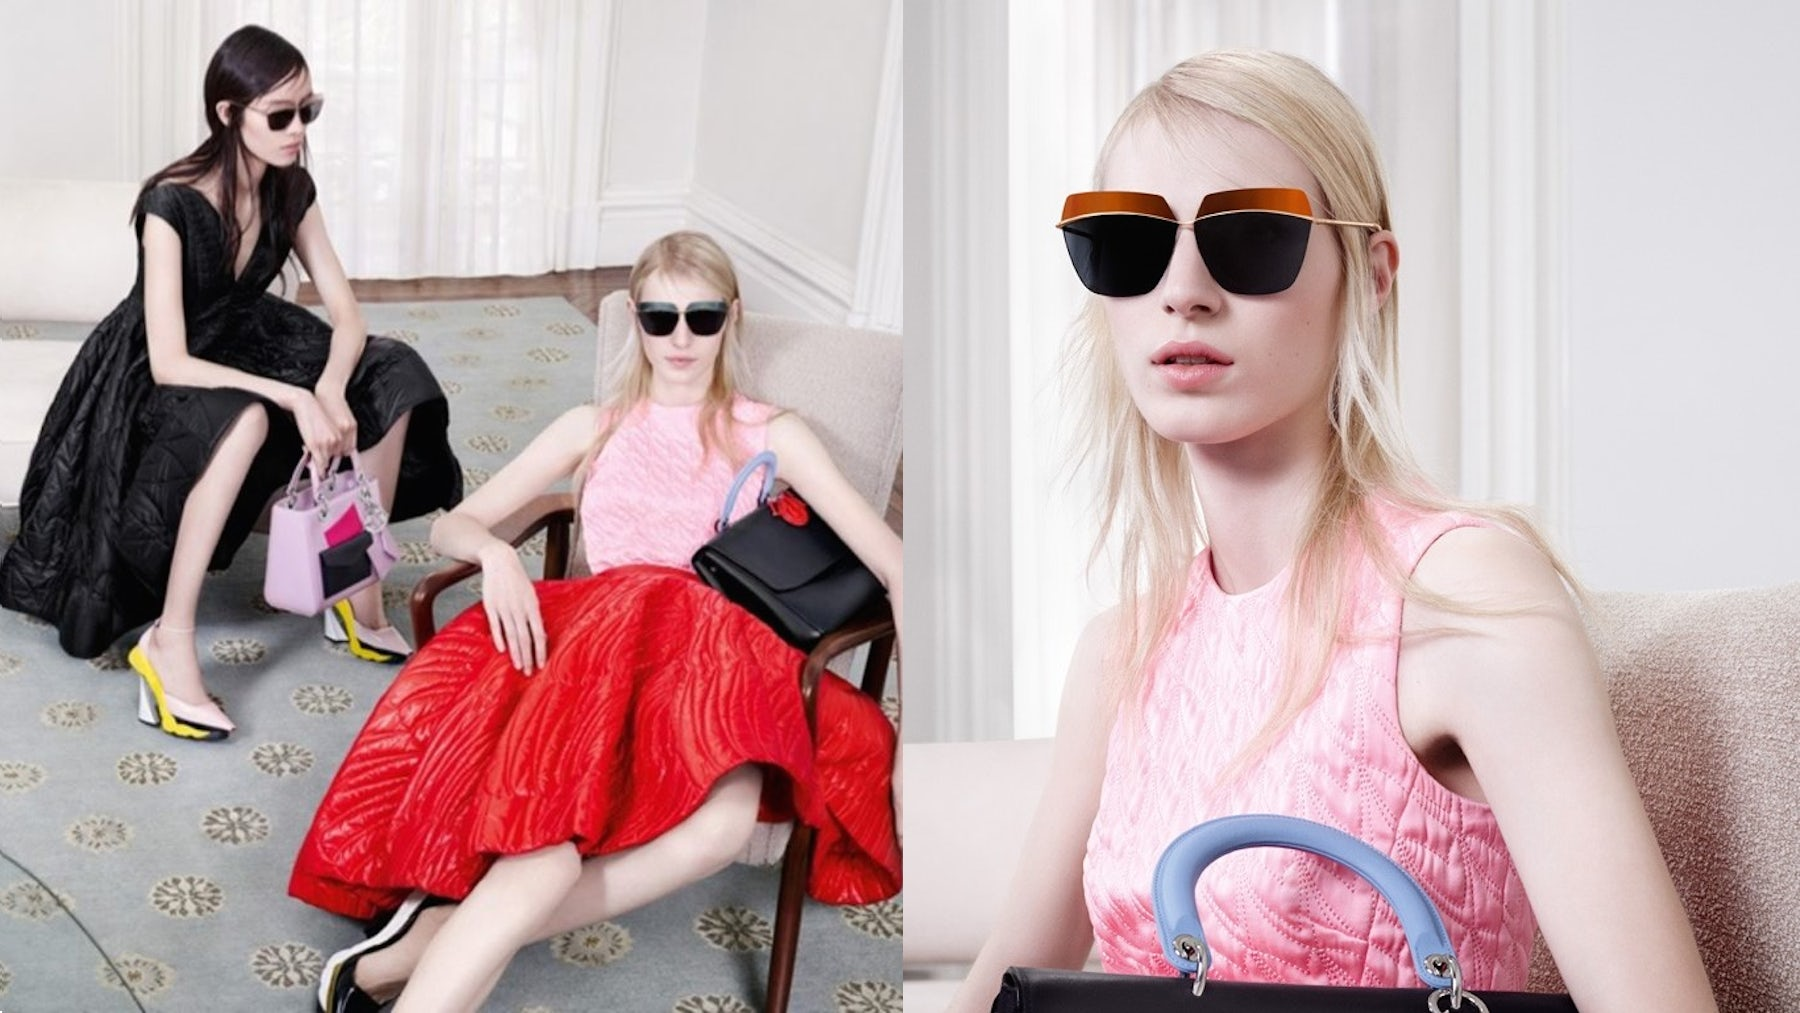 Dior's Autumn/Winter 2014 ready-to-wear campaign, showcasing the brand's eyewear range | Source: Dior